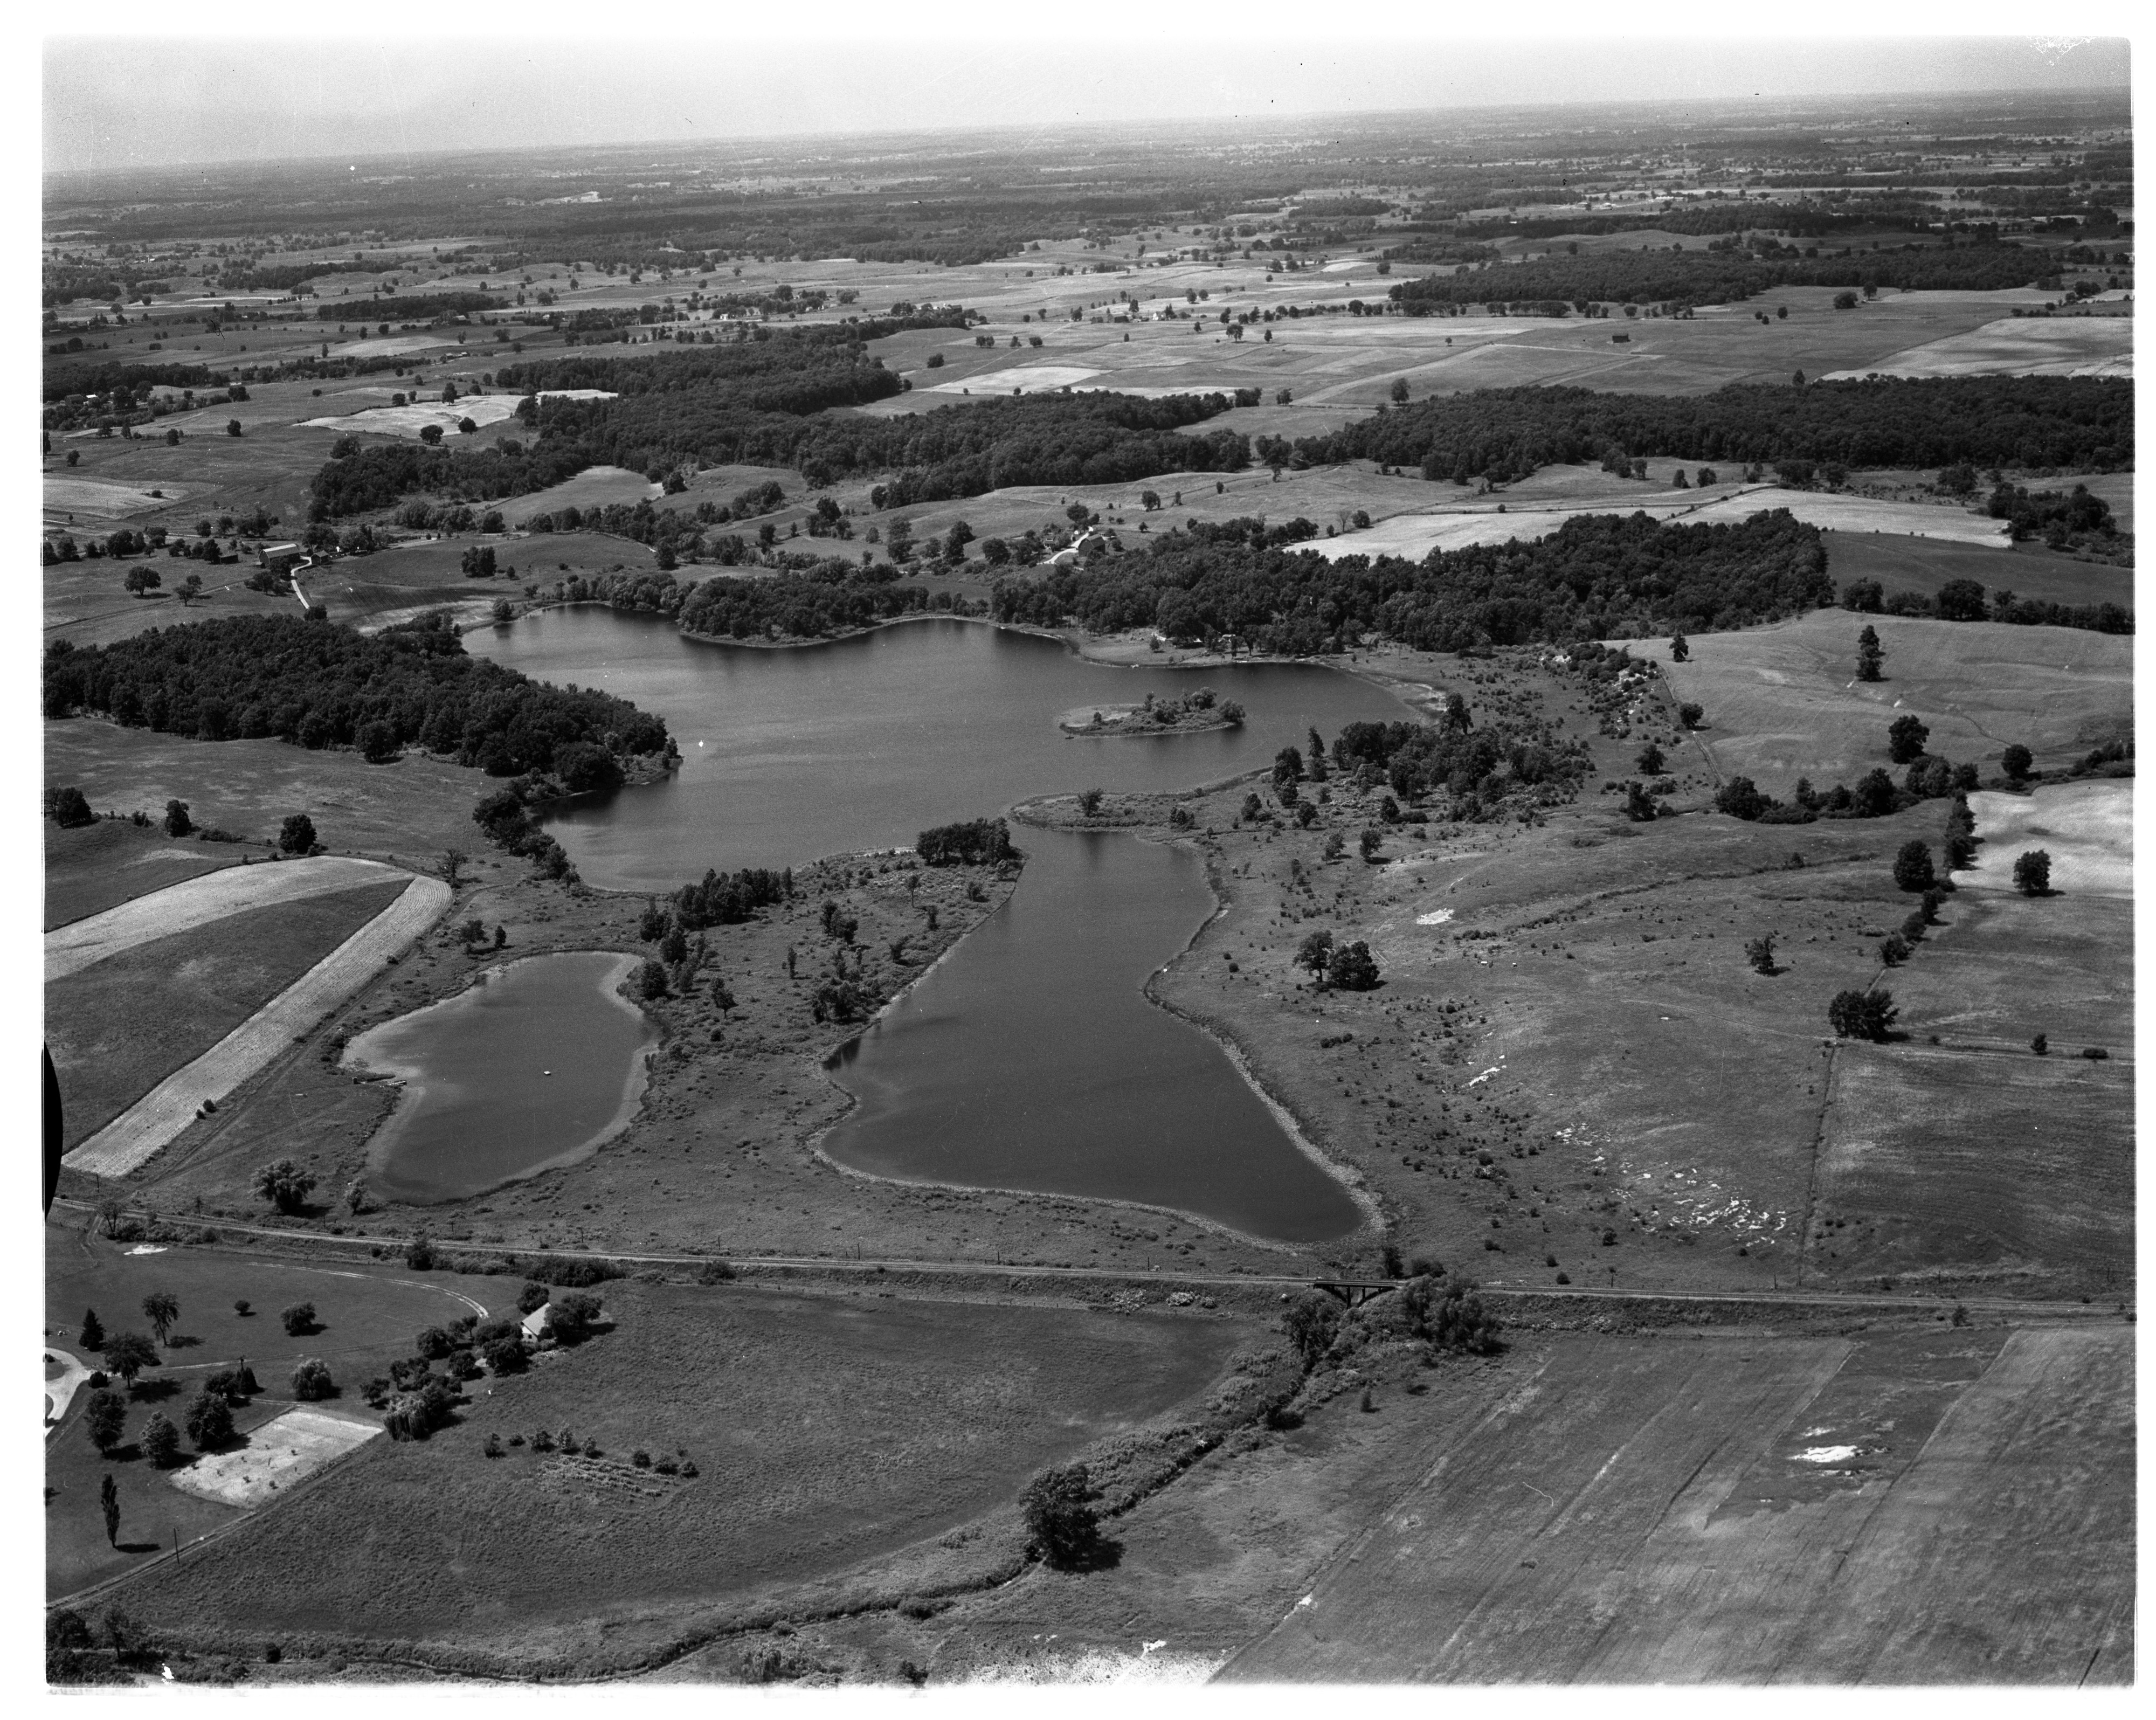 Aerial Photograph of Columbia Lake, Bridgewater Township, August 1956 image